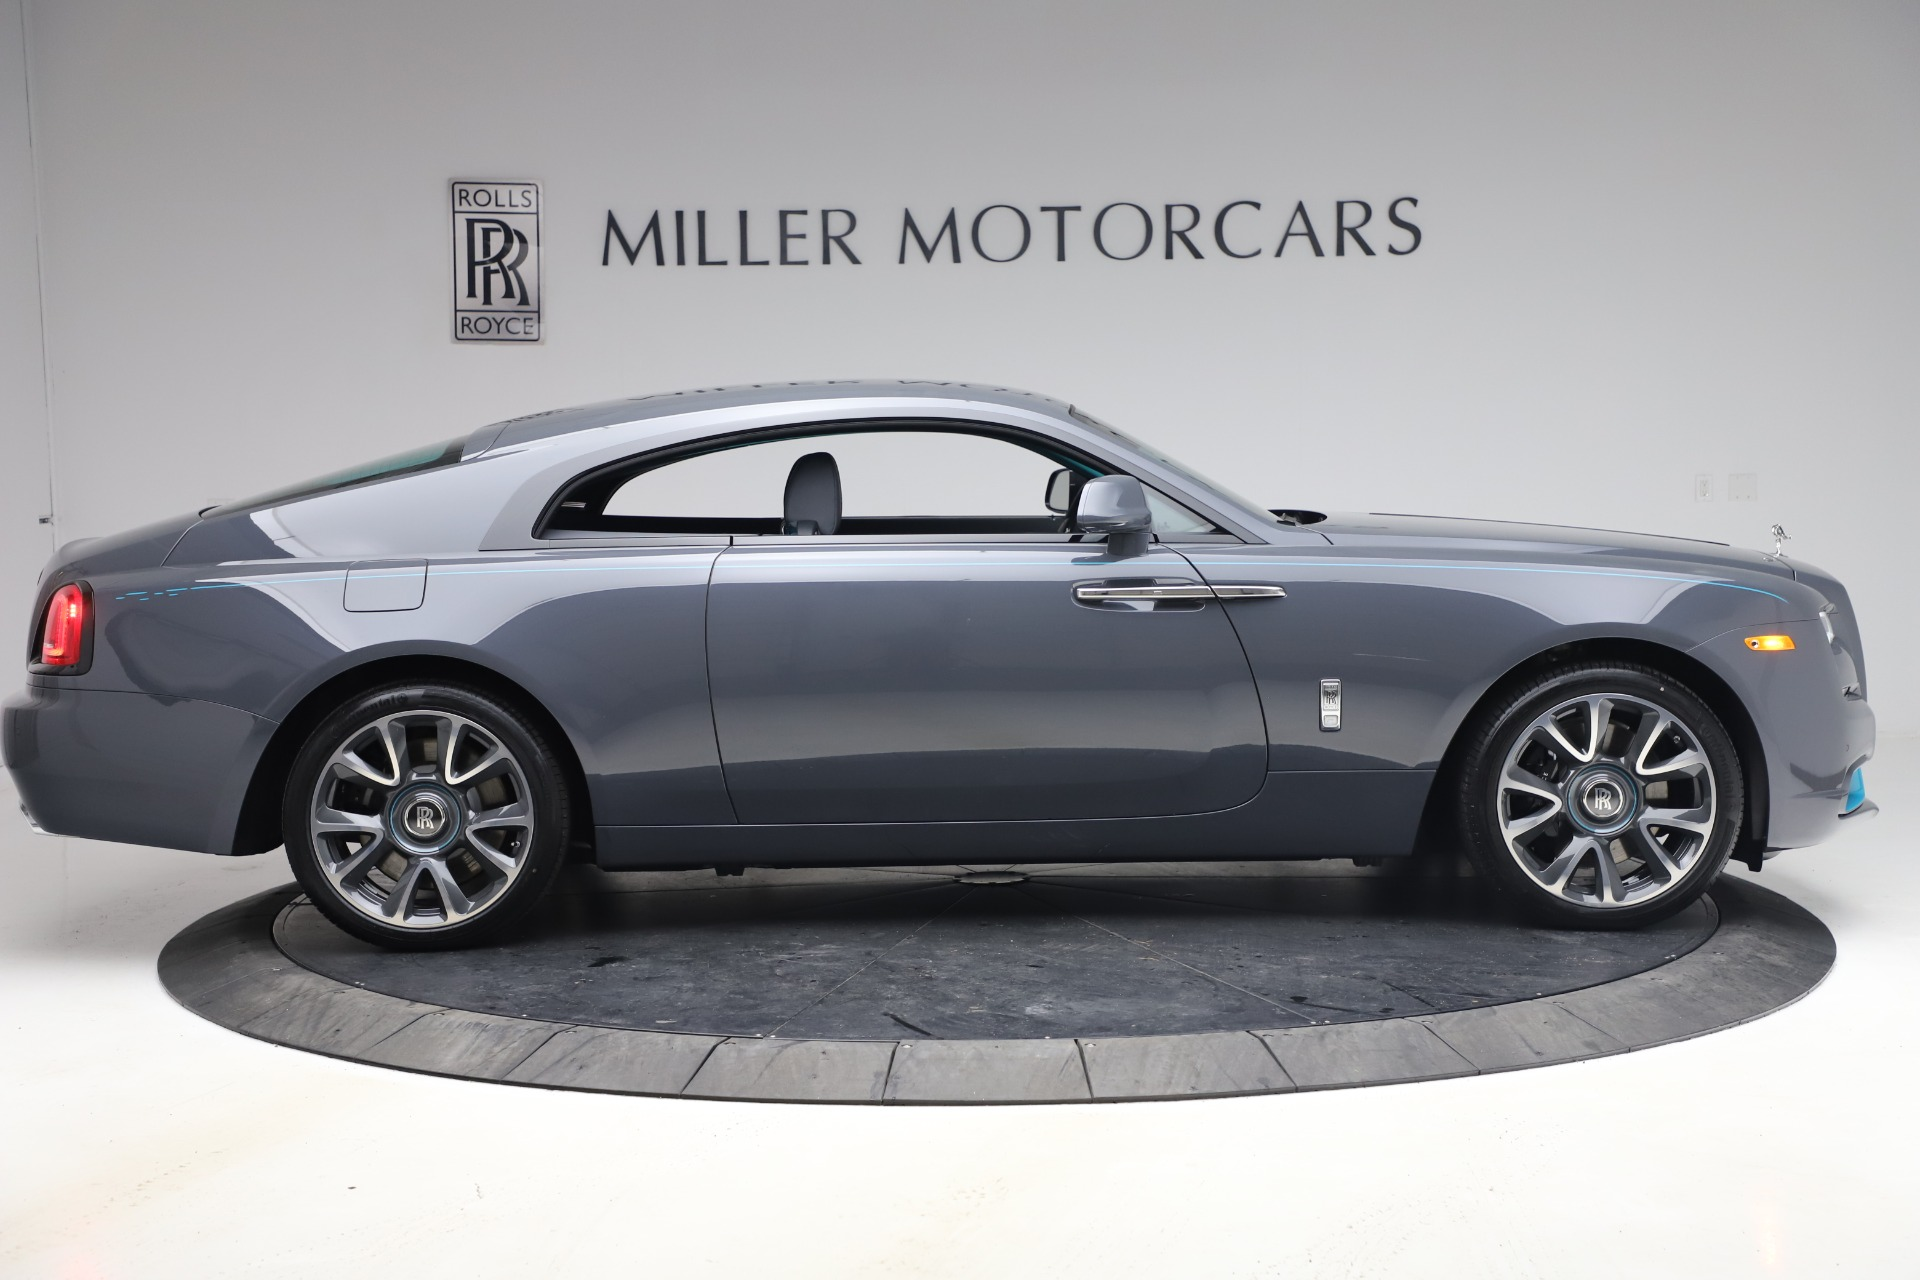 New 2021 Rolls Royce Wraith KRYPTOS